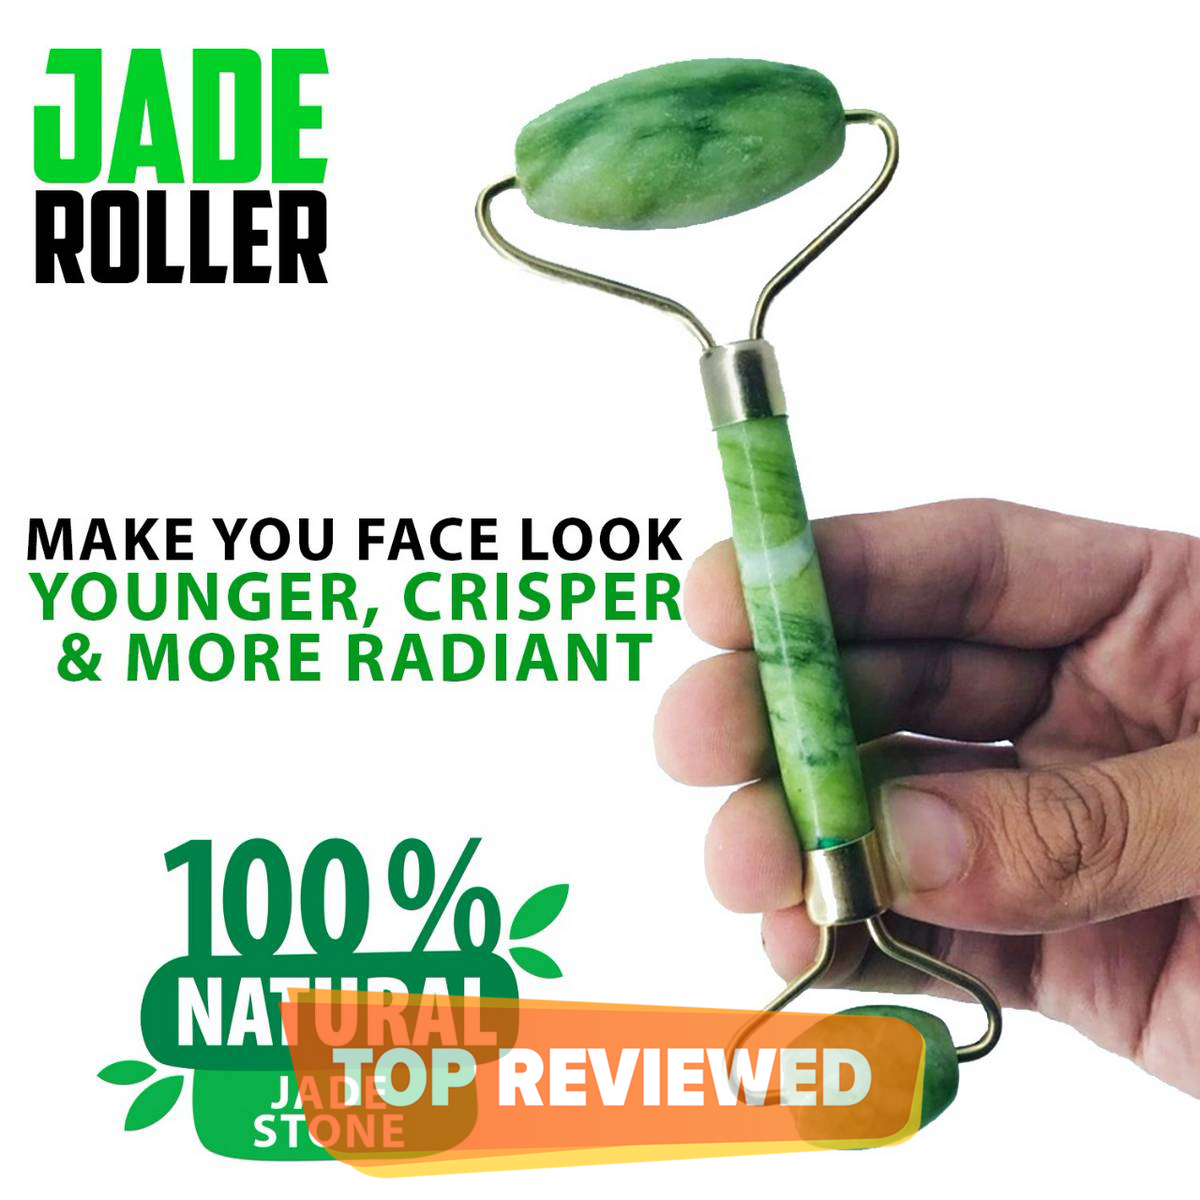 Jade Roller Natural Stone Double Head Stone For Face Massage Skin Beauty Facial Care Tool